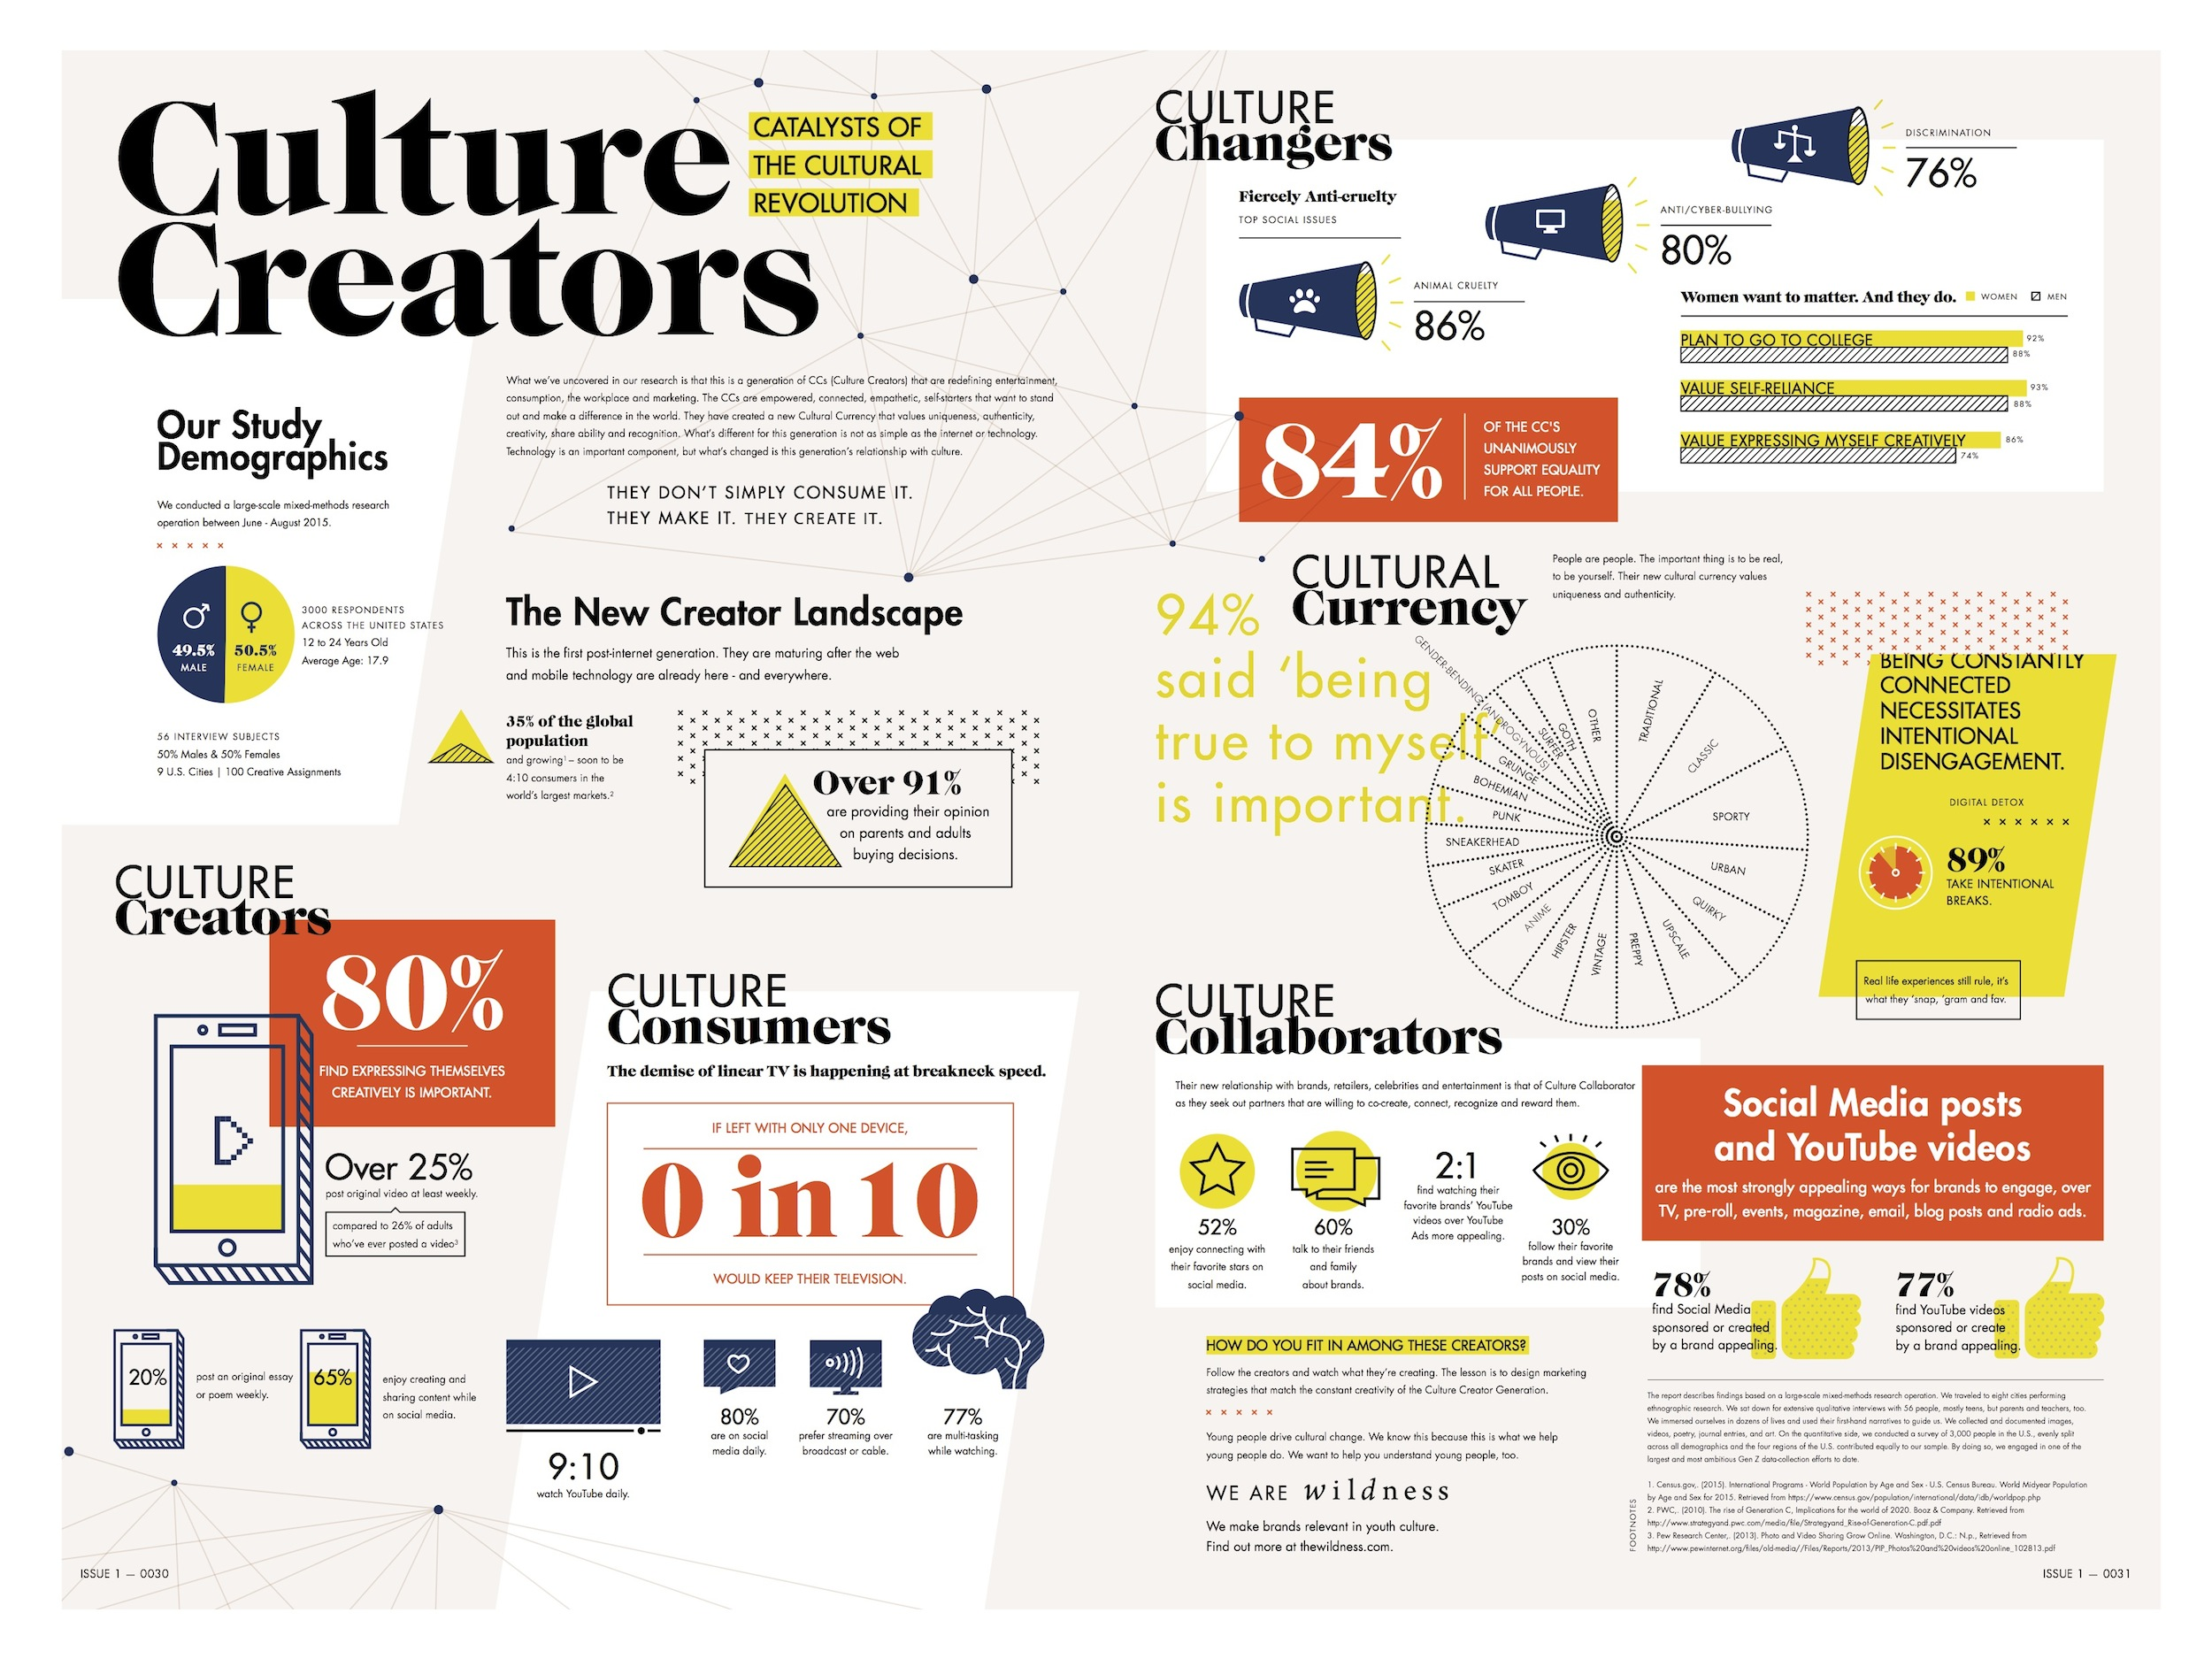 Culture-Creators-Infographic-Wildness